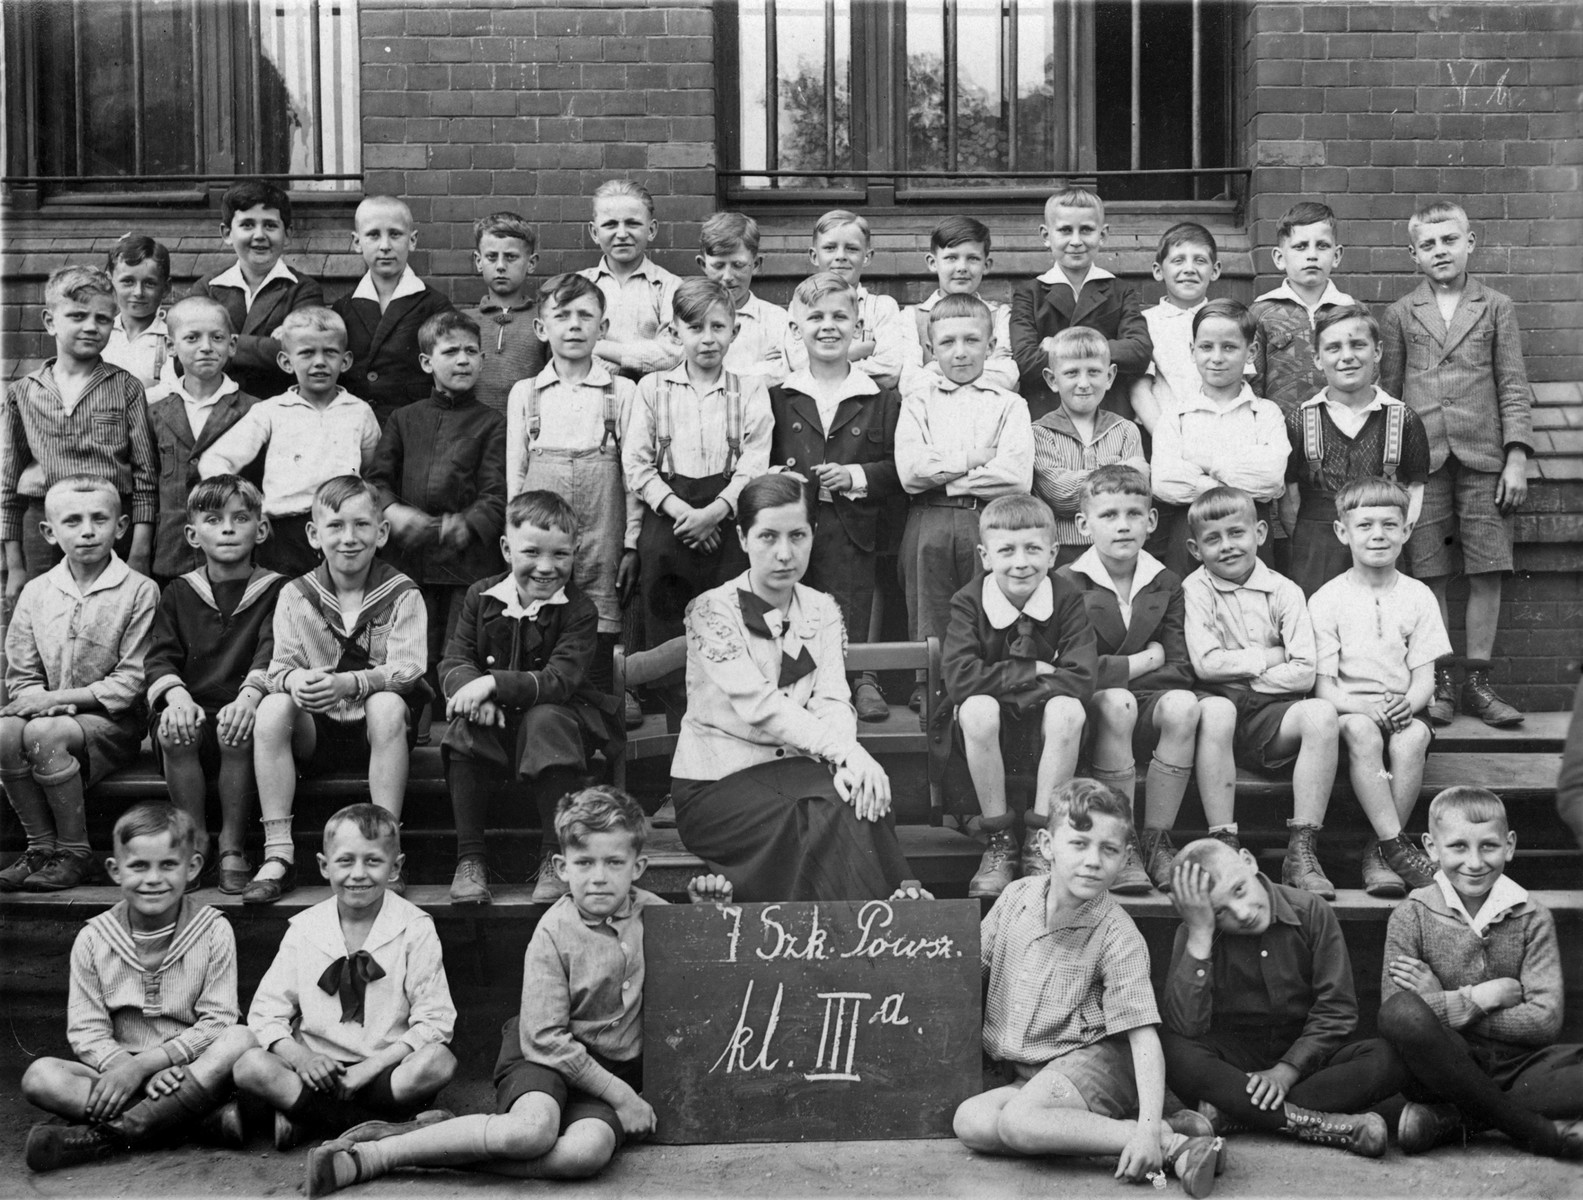 Group portrait of students in the third class of a Polish elementary school in Poznan.  Among those pictured is a Jewish child, Zygmunt Bauman (top row, left) who is the donor's father.